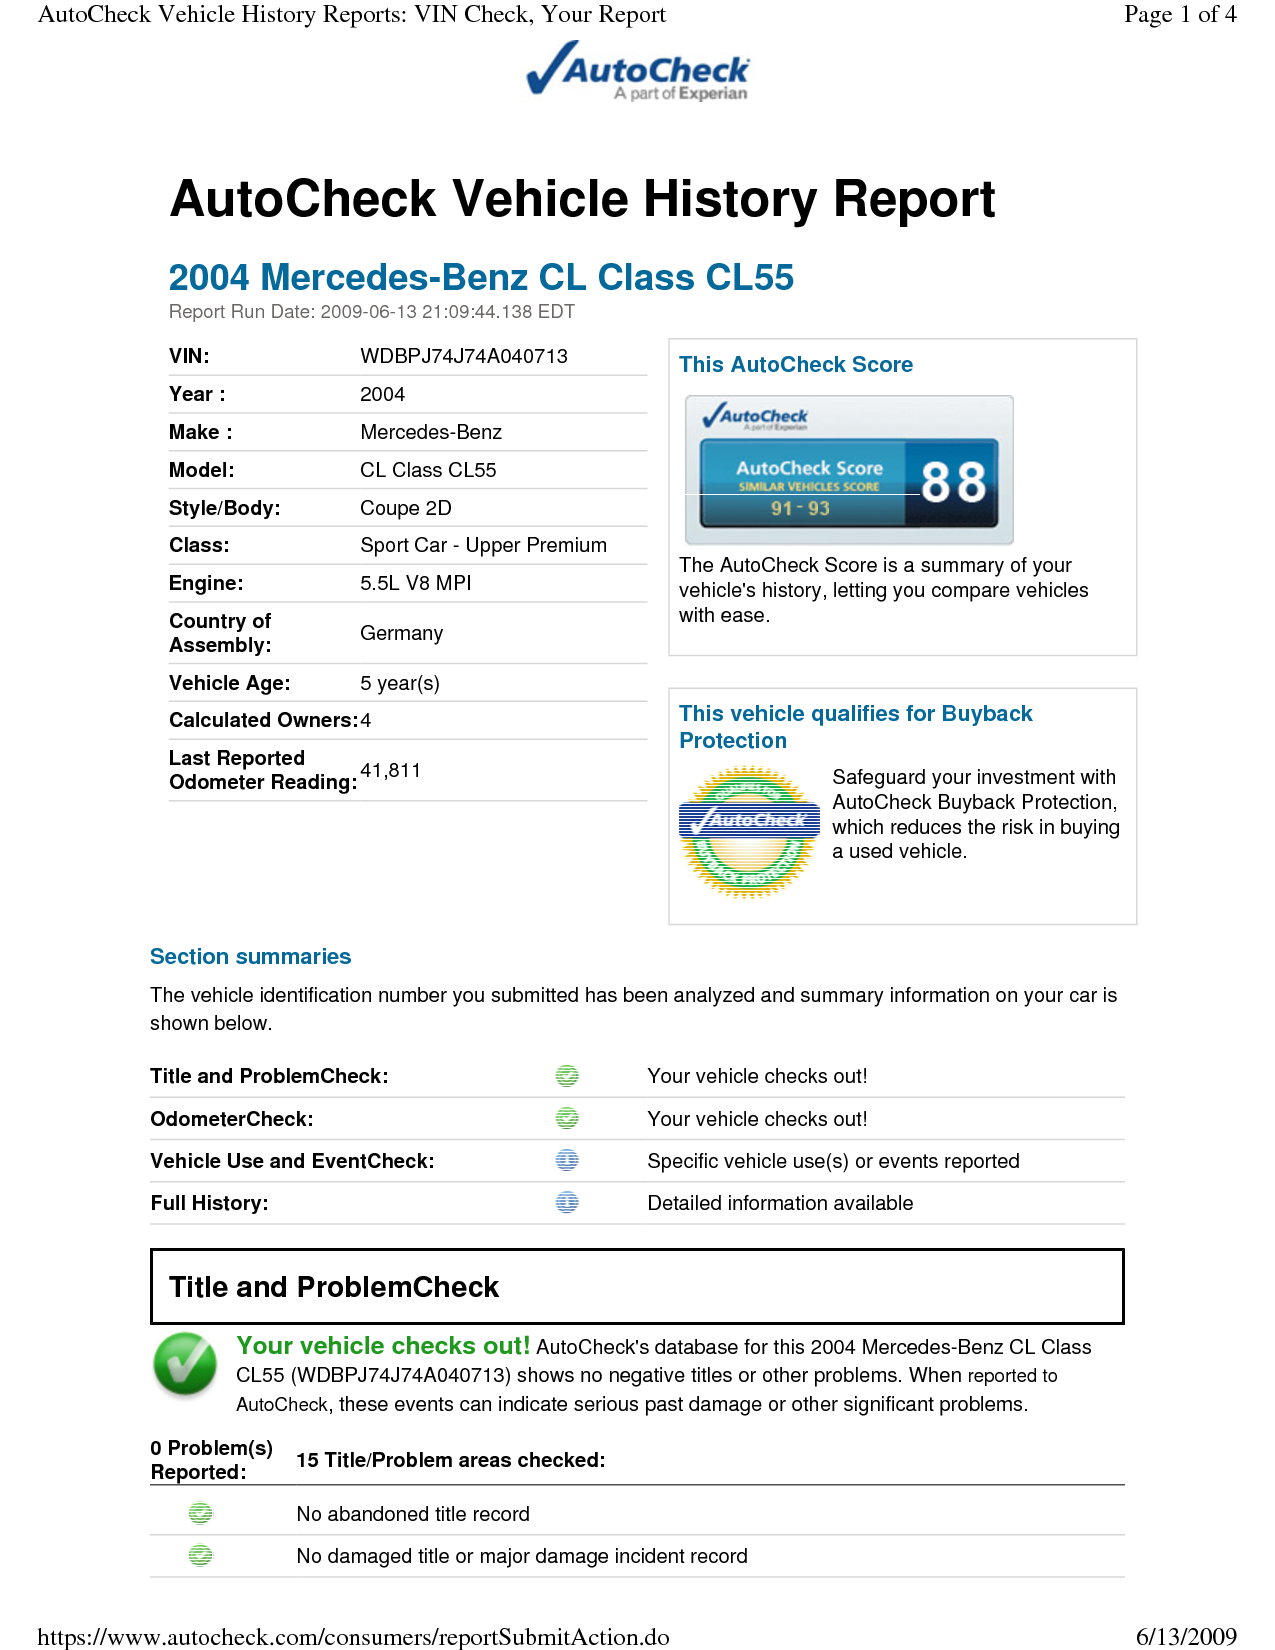 Used Car Accident Report Fresh Carfax Vs Autocheck Reports What You Don T Know